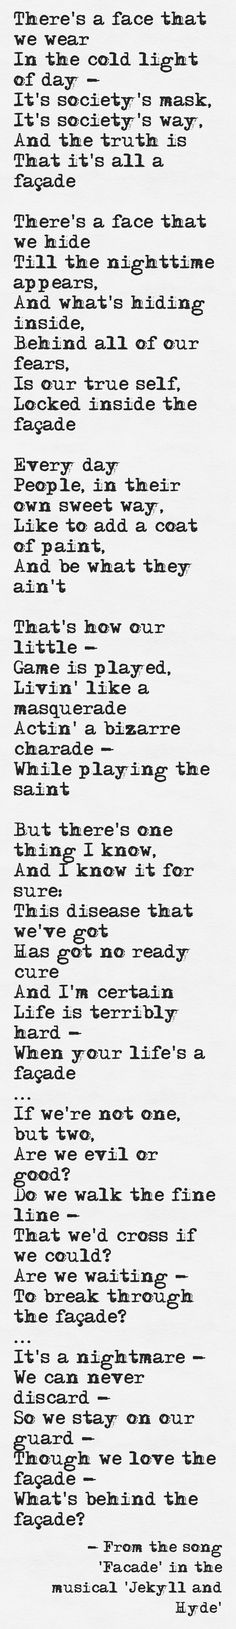 Lyrics from the song 'Facade' in the musical 'Jekyll and Hyde'    http://www.humancondition.com